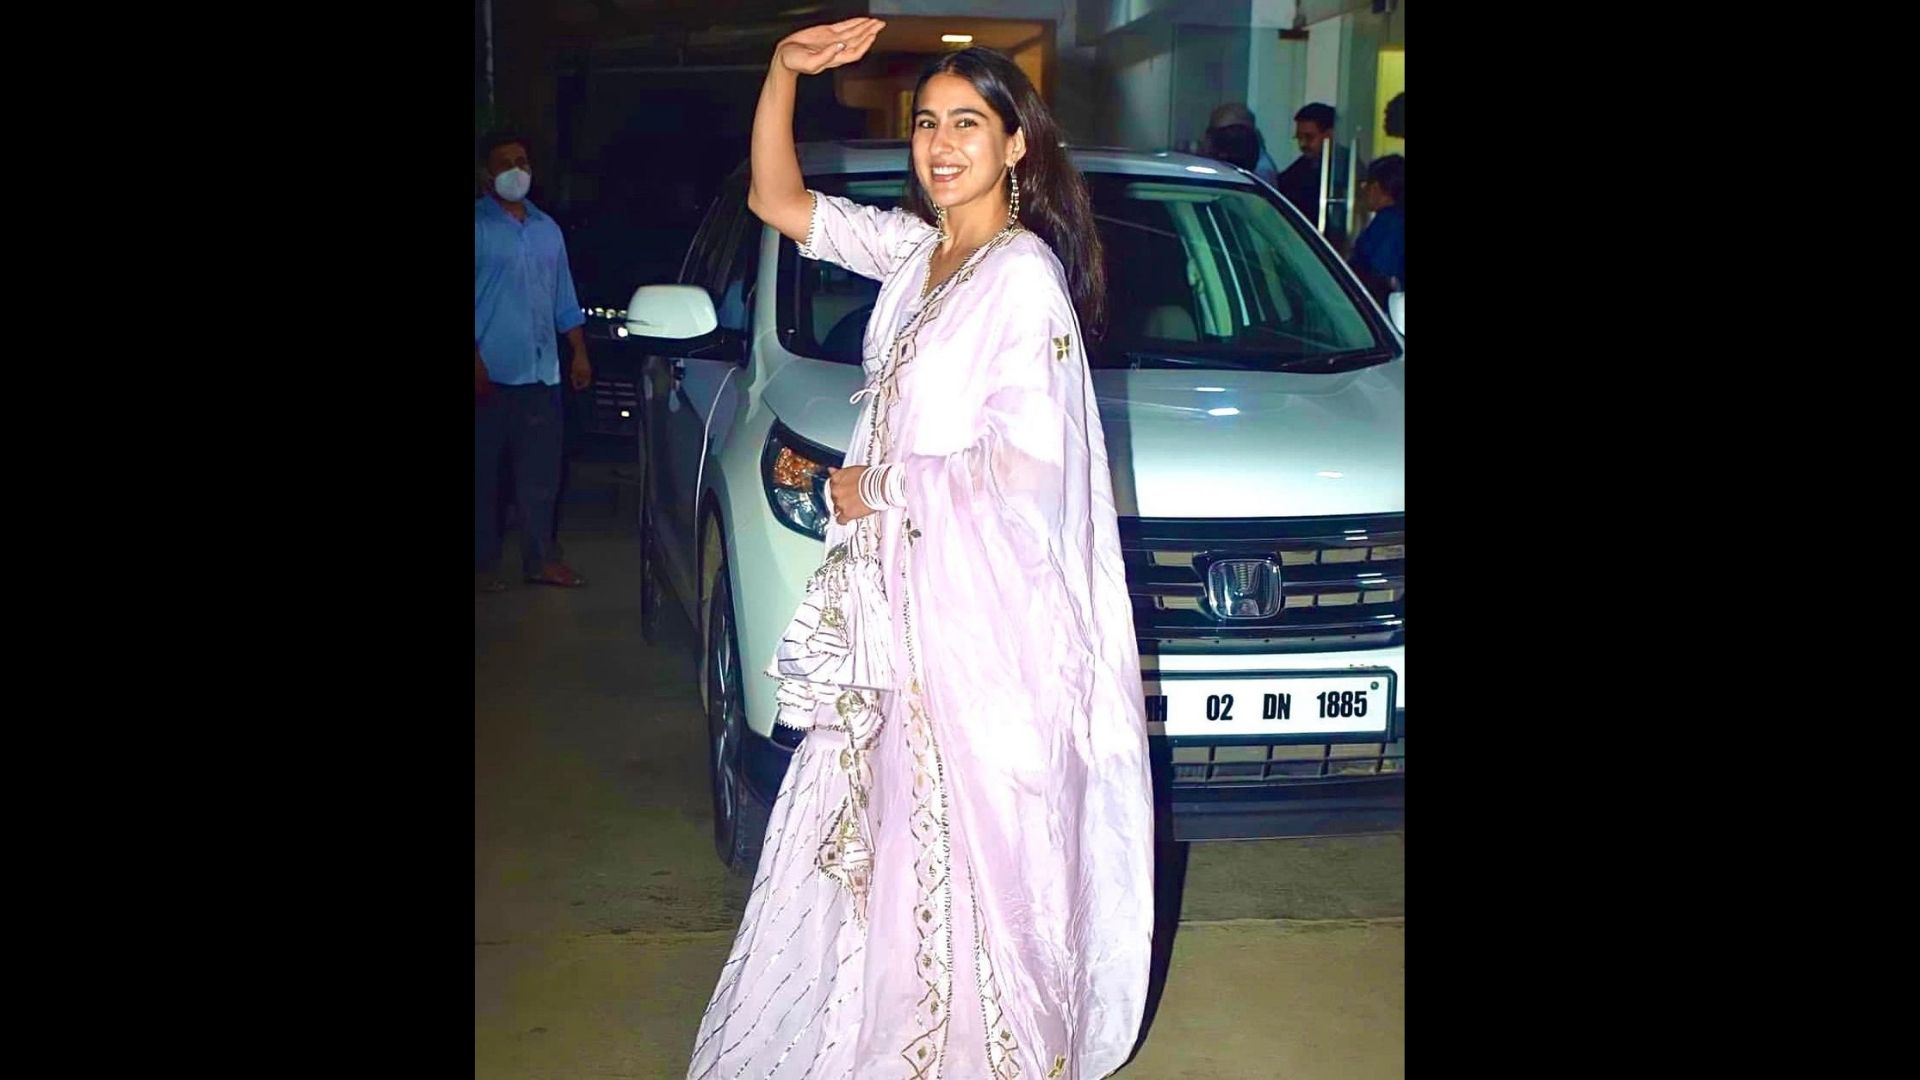 Sara Ali Khan Spotted With Her Mother Amrita Singh, Cheering And Supporting Vicky Kaushal On His Newest Release